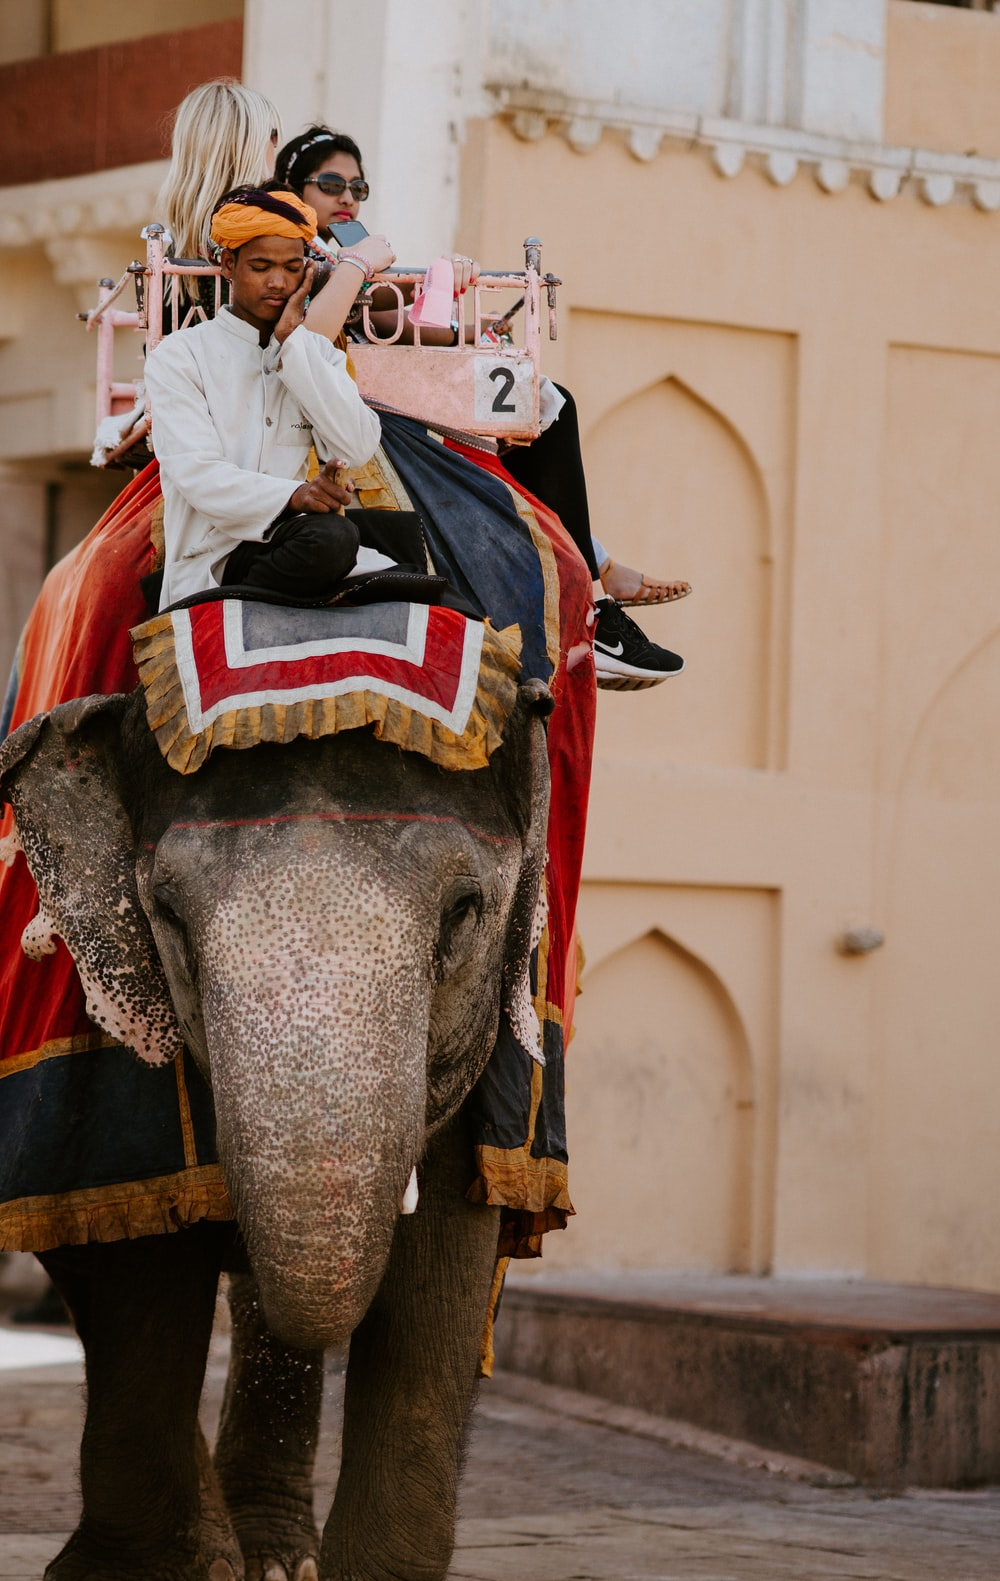 man and woman riding elephant